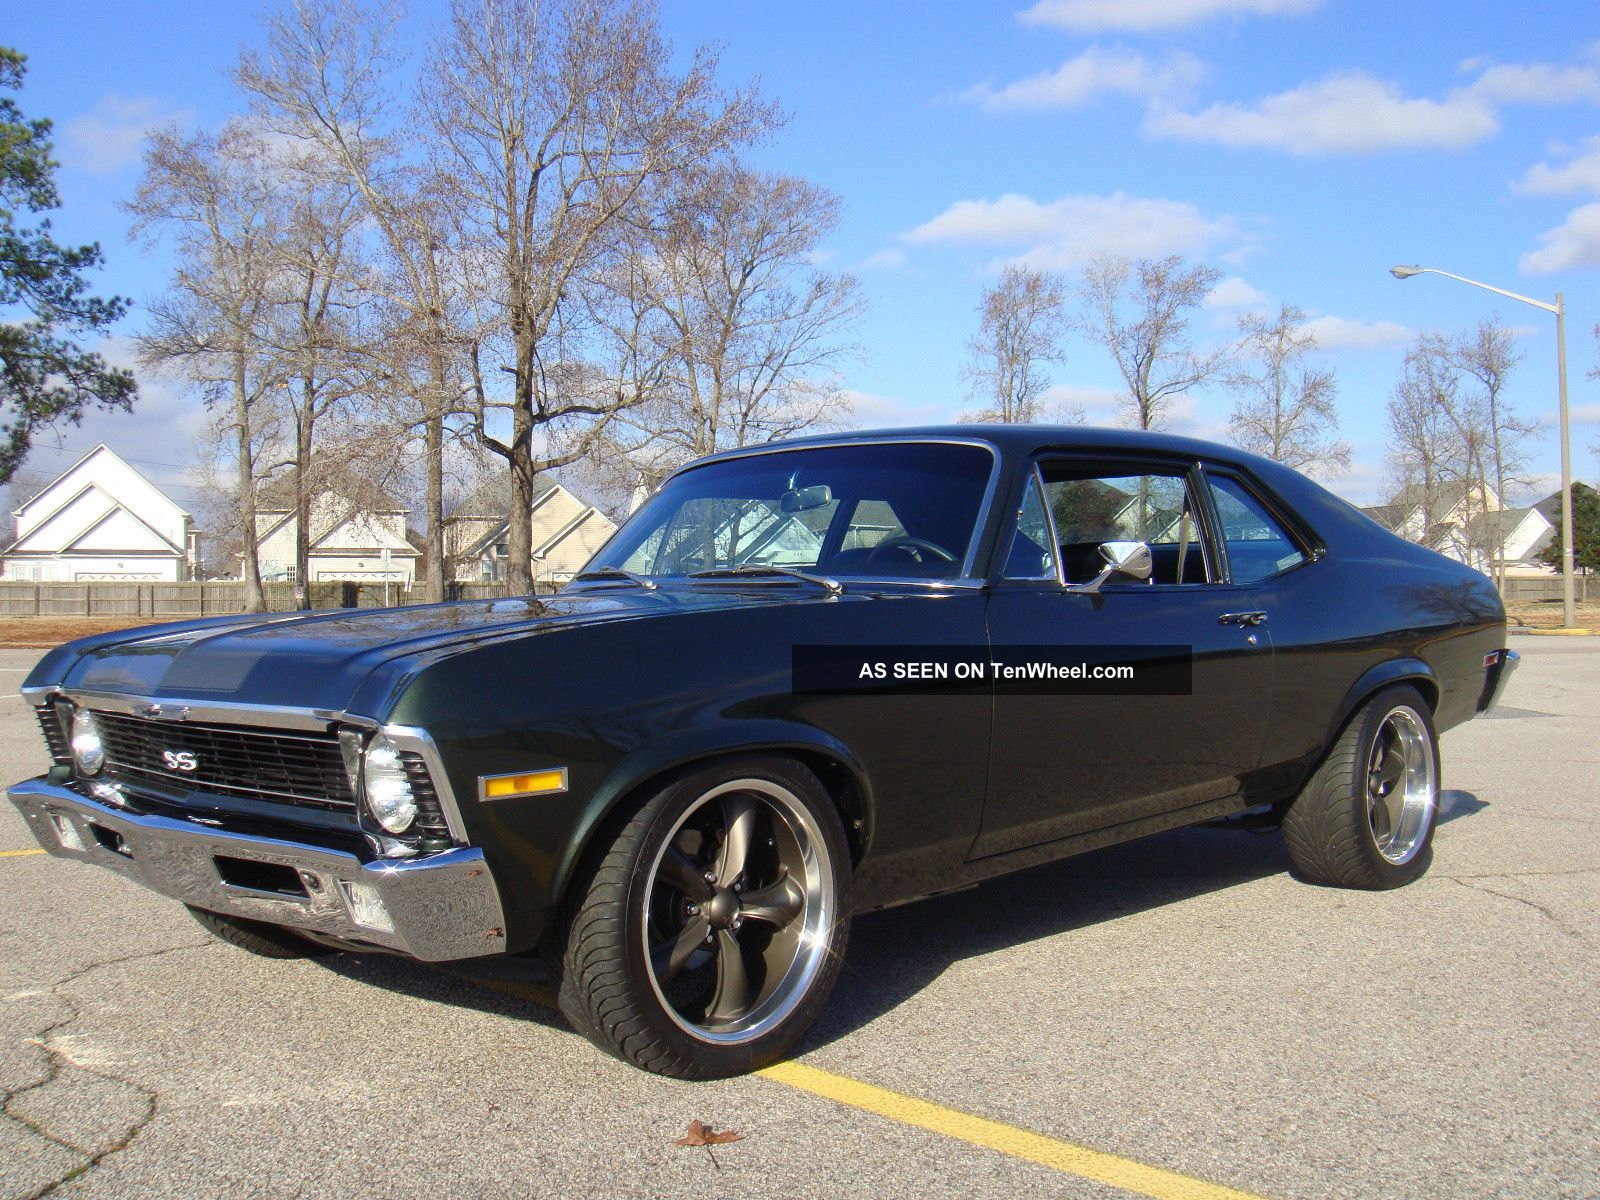 1972 Chevrolet Nova Ss Clone 396 Bb 4sp Muncie Frame Off Resto.  Show & Go Nova photo